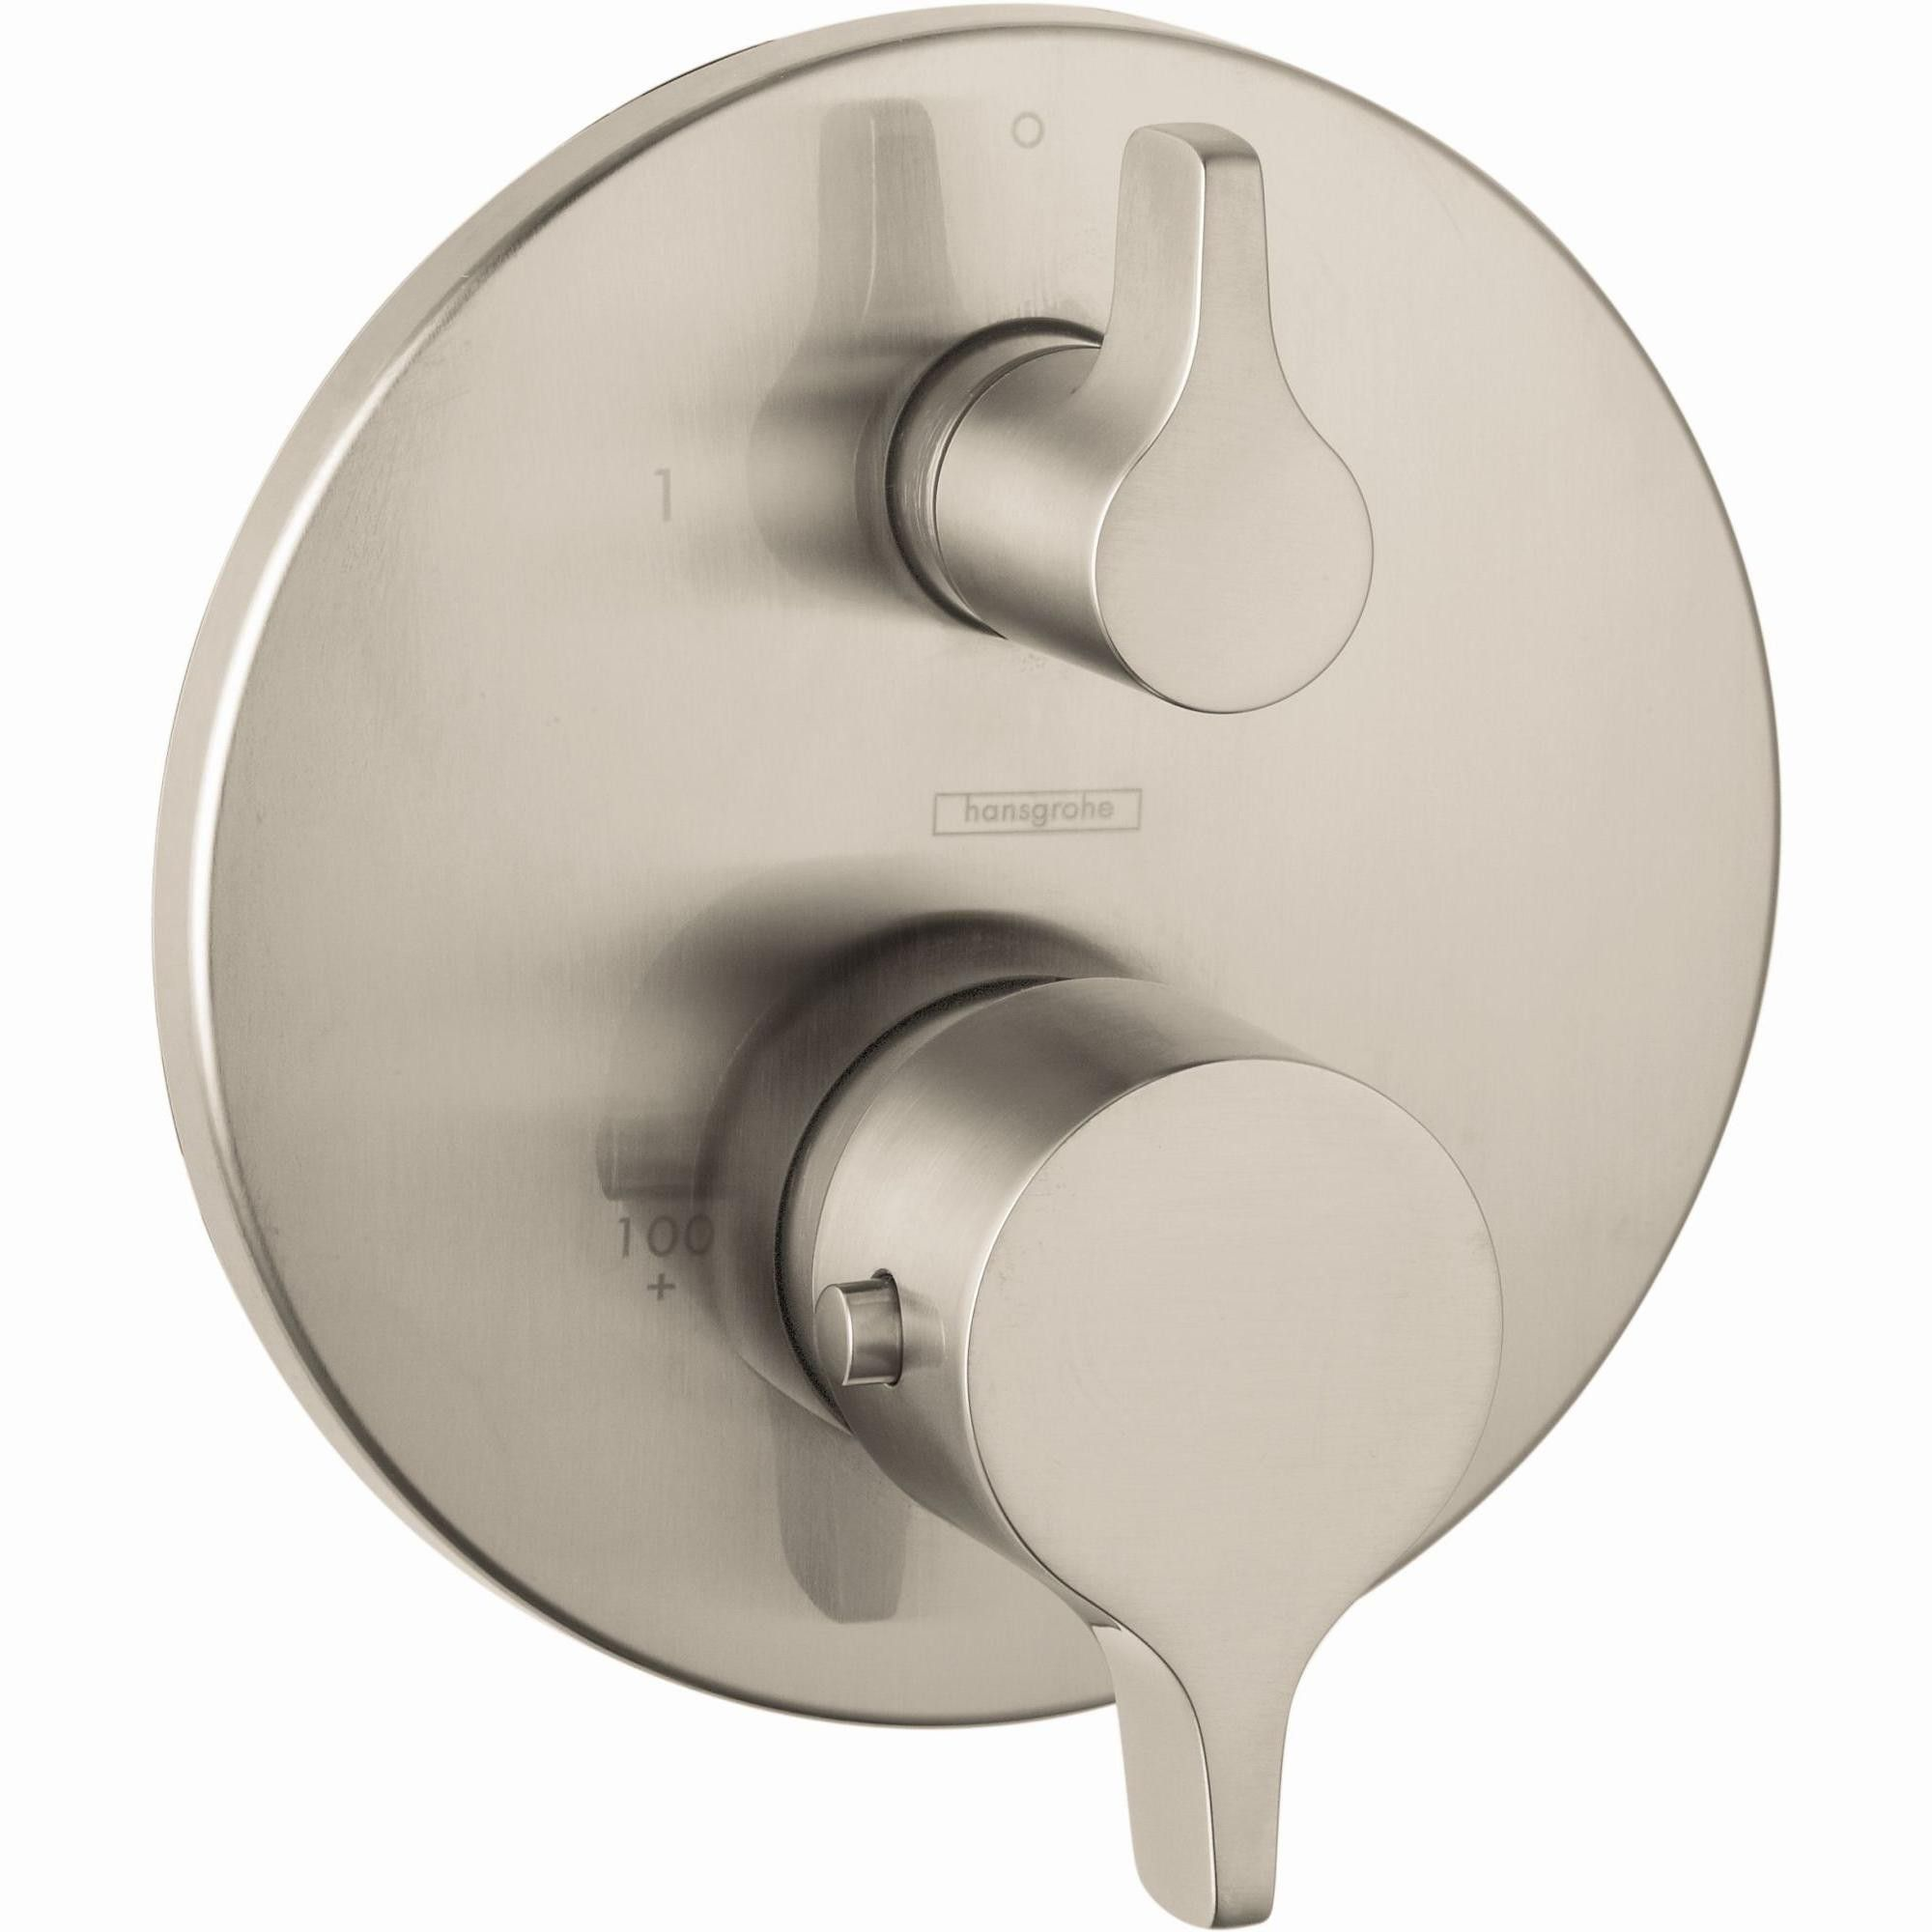 Hansgrohe 04352 S E Thermostatic Valve Trim With Integrated Volume